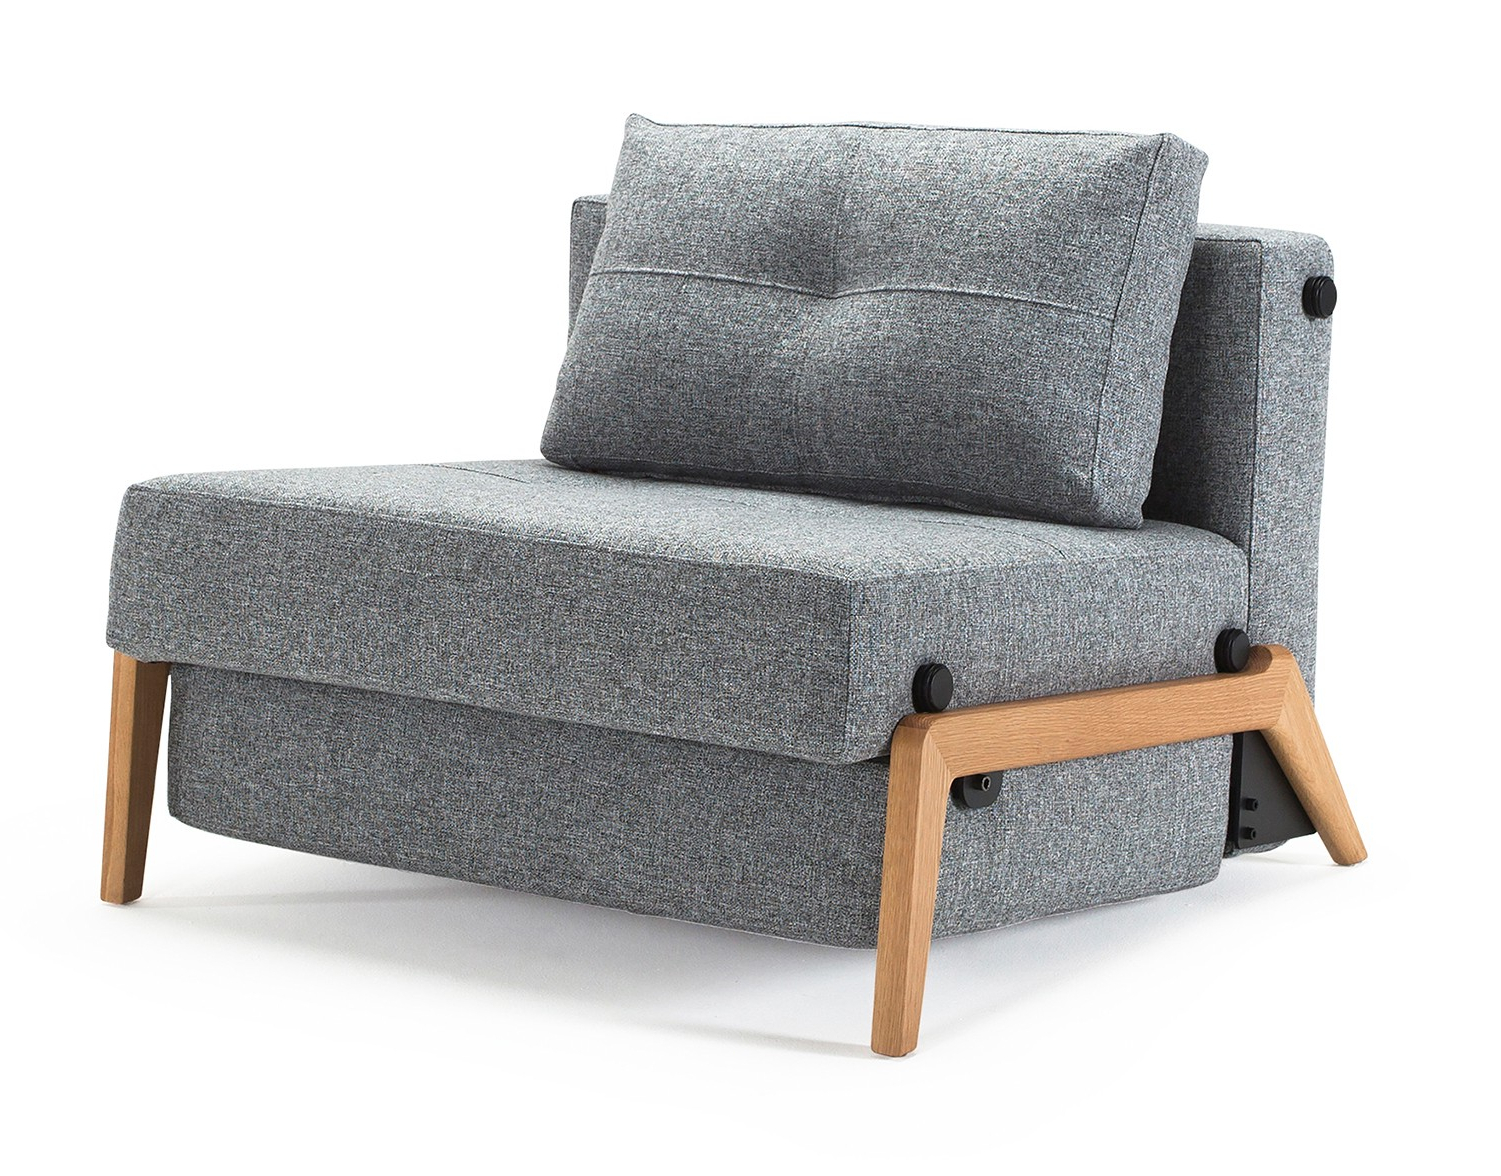 Cubed 90 Single Sofa Bed Chair With Most Up To Date Cheap Single Sofa Bed Chairs (Gallery 1 of 20)